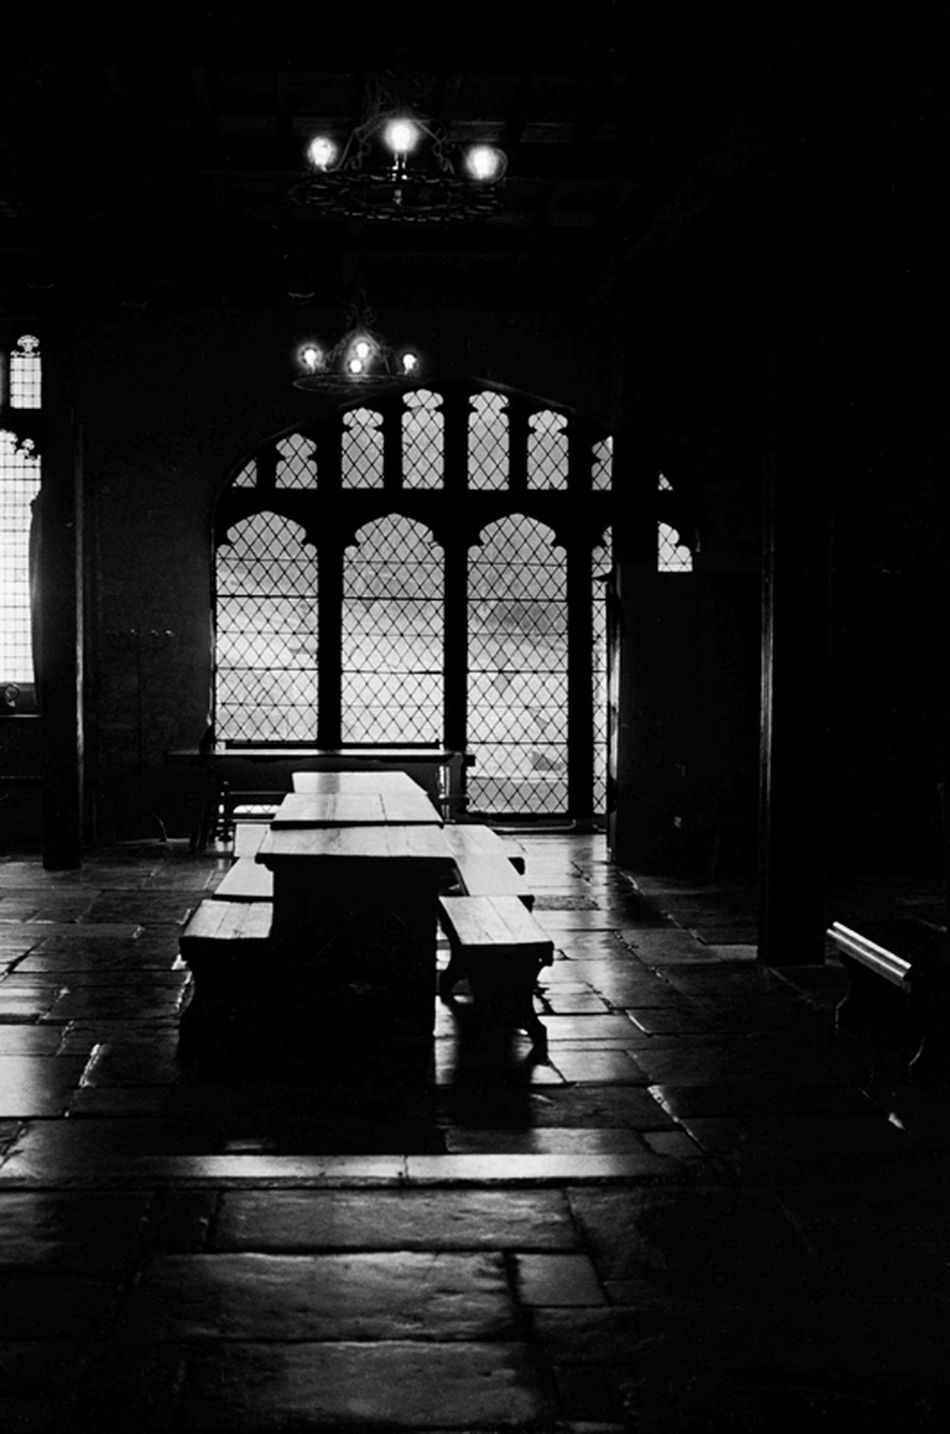 Montsalvat Great Hall Eltham Dining Room Dining Room Table Banquet Banquet Hall Banqueting Hall B&w Photography B&w Architecture